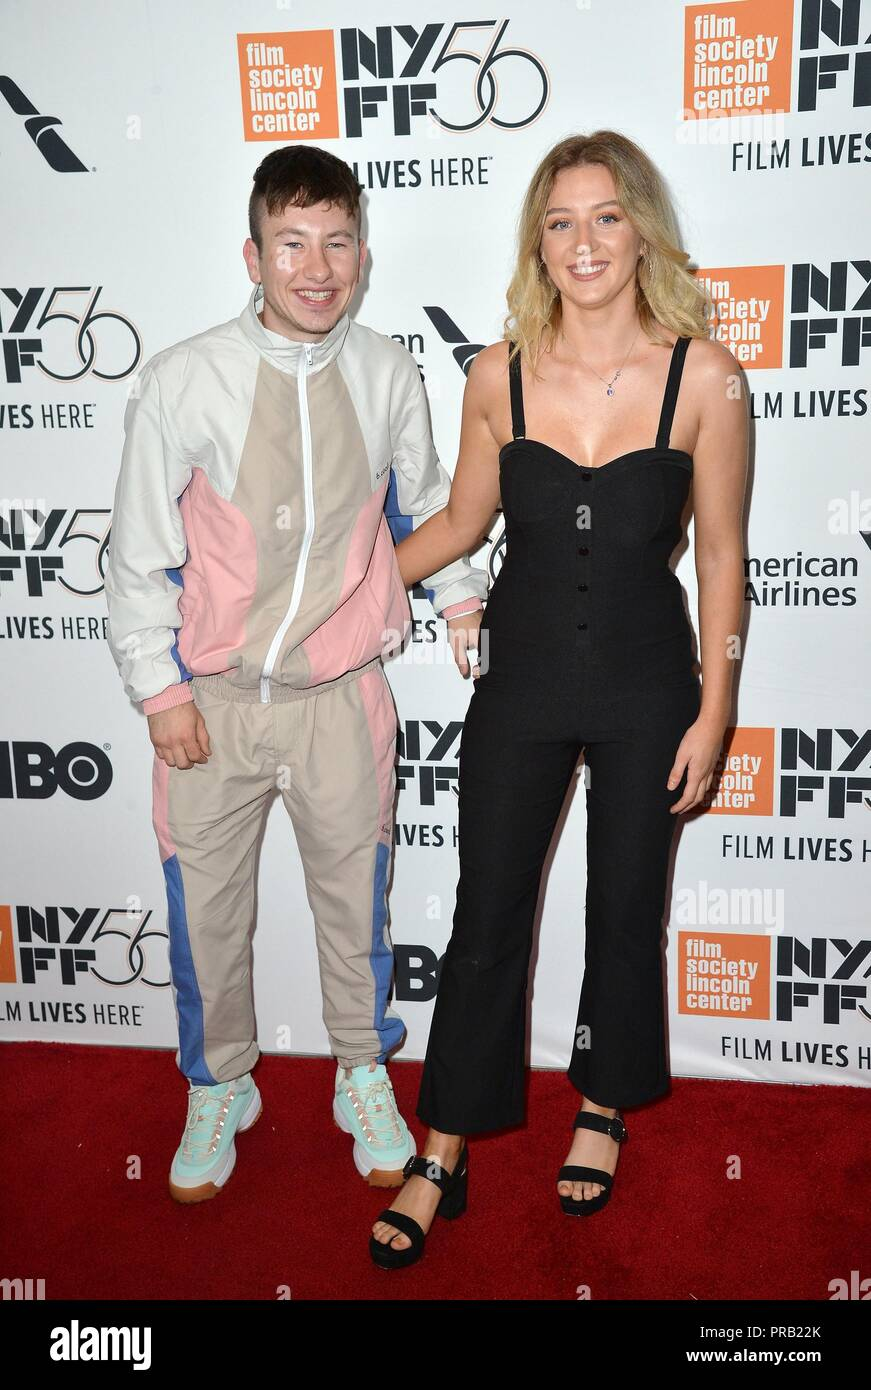 Barry Keoghan at arrivals for THE FAVOURITE Premiere at the New York Film Festival Opening Night, Alice Tully Hall at Lincoln Center, New York, NY September 28, 2018. Photo By: Kristin Callahan/Everett Collection - Stock Image